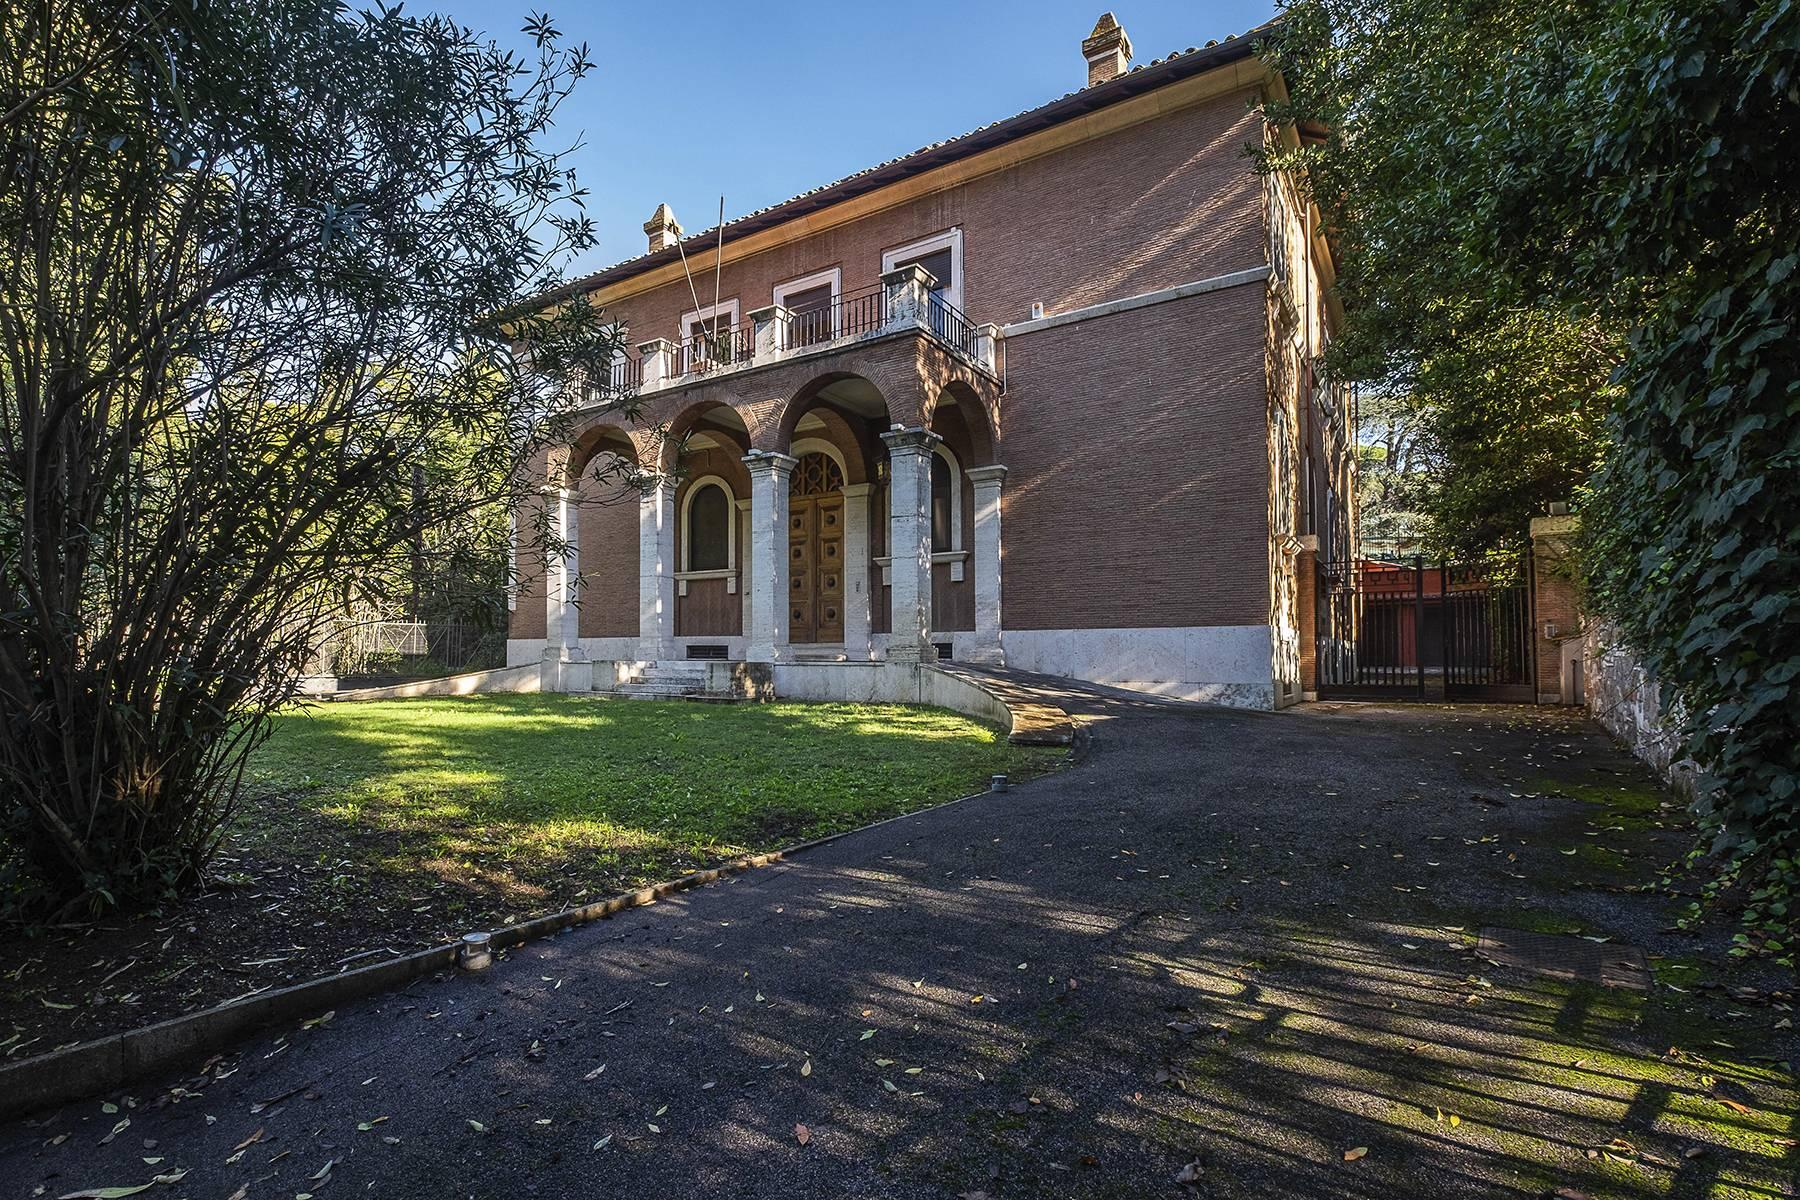 Elegant classical  Villa in the heart of Rome's archaeological ruins - 36